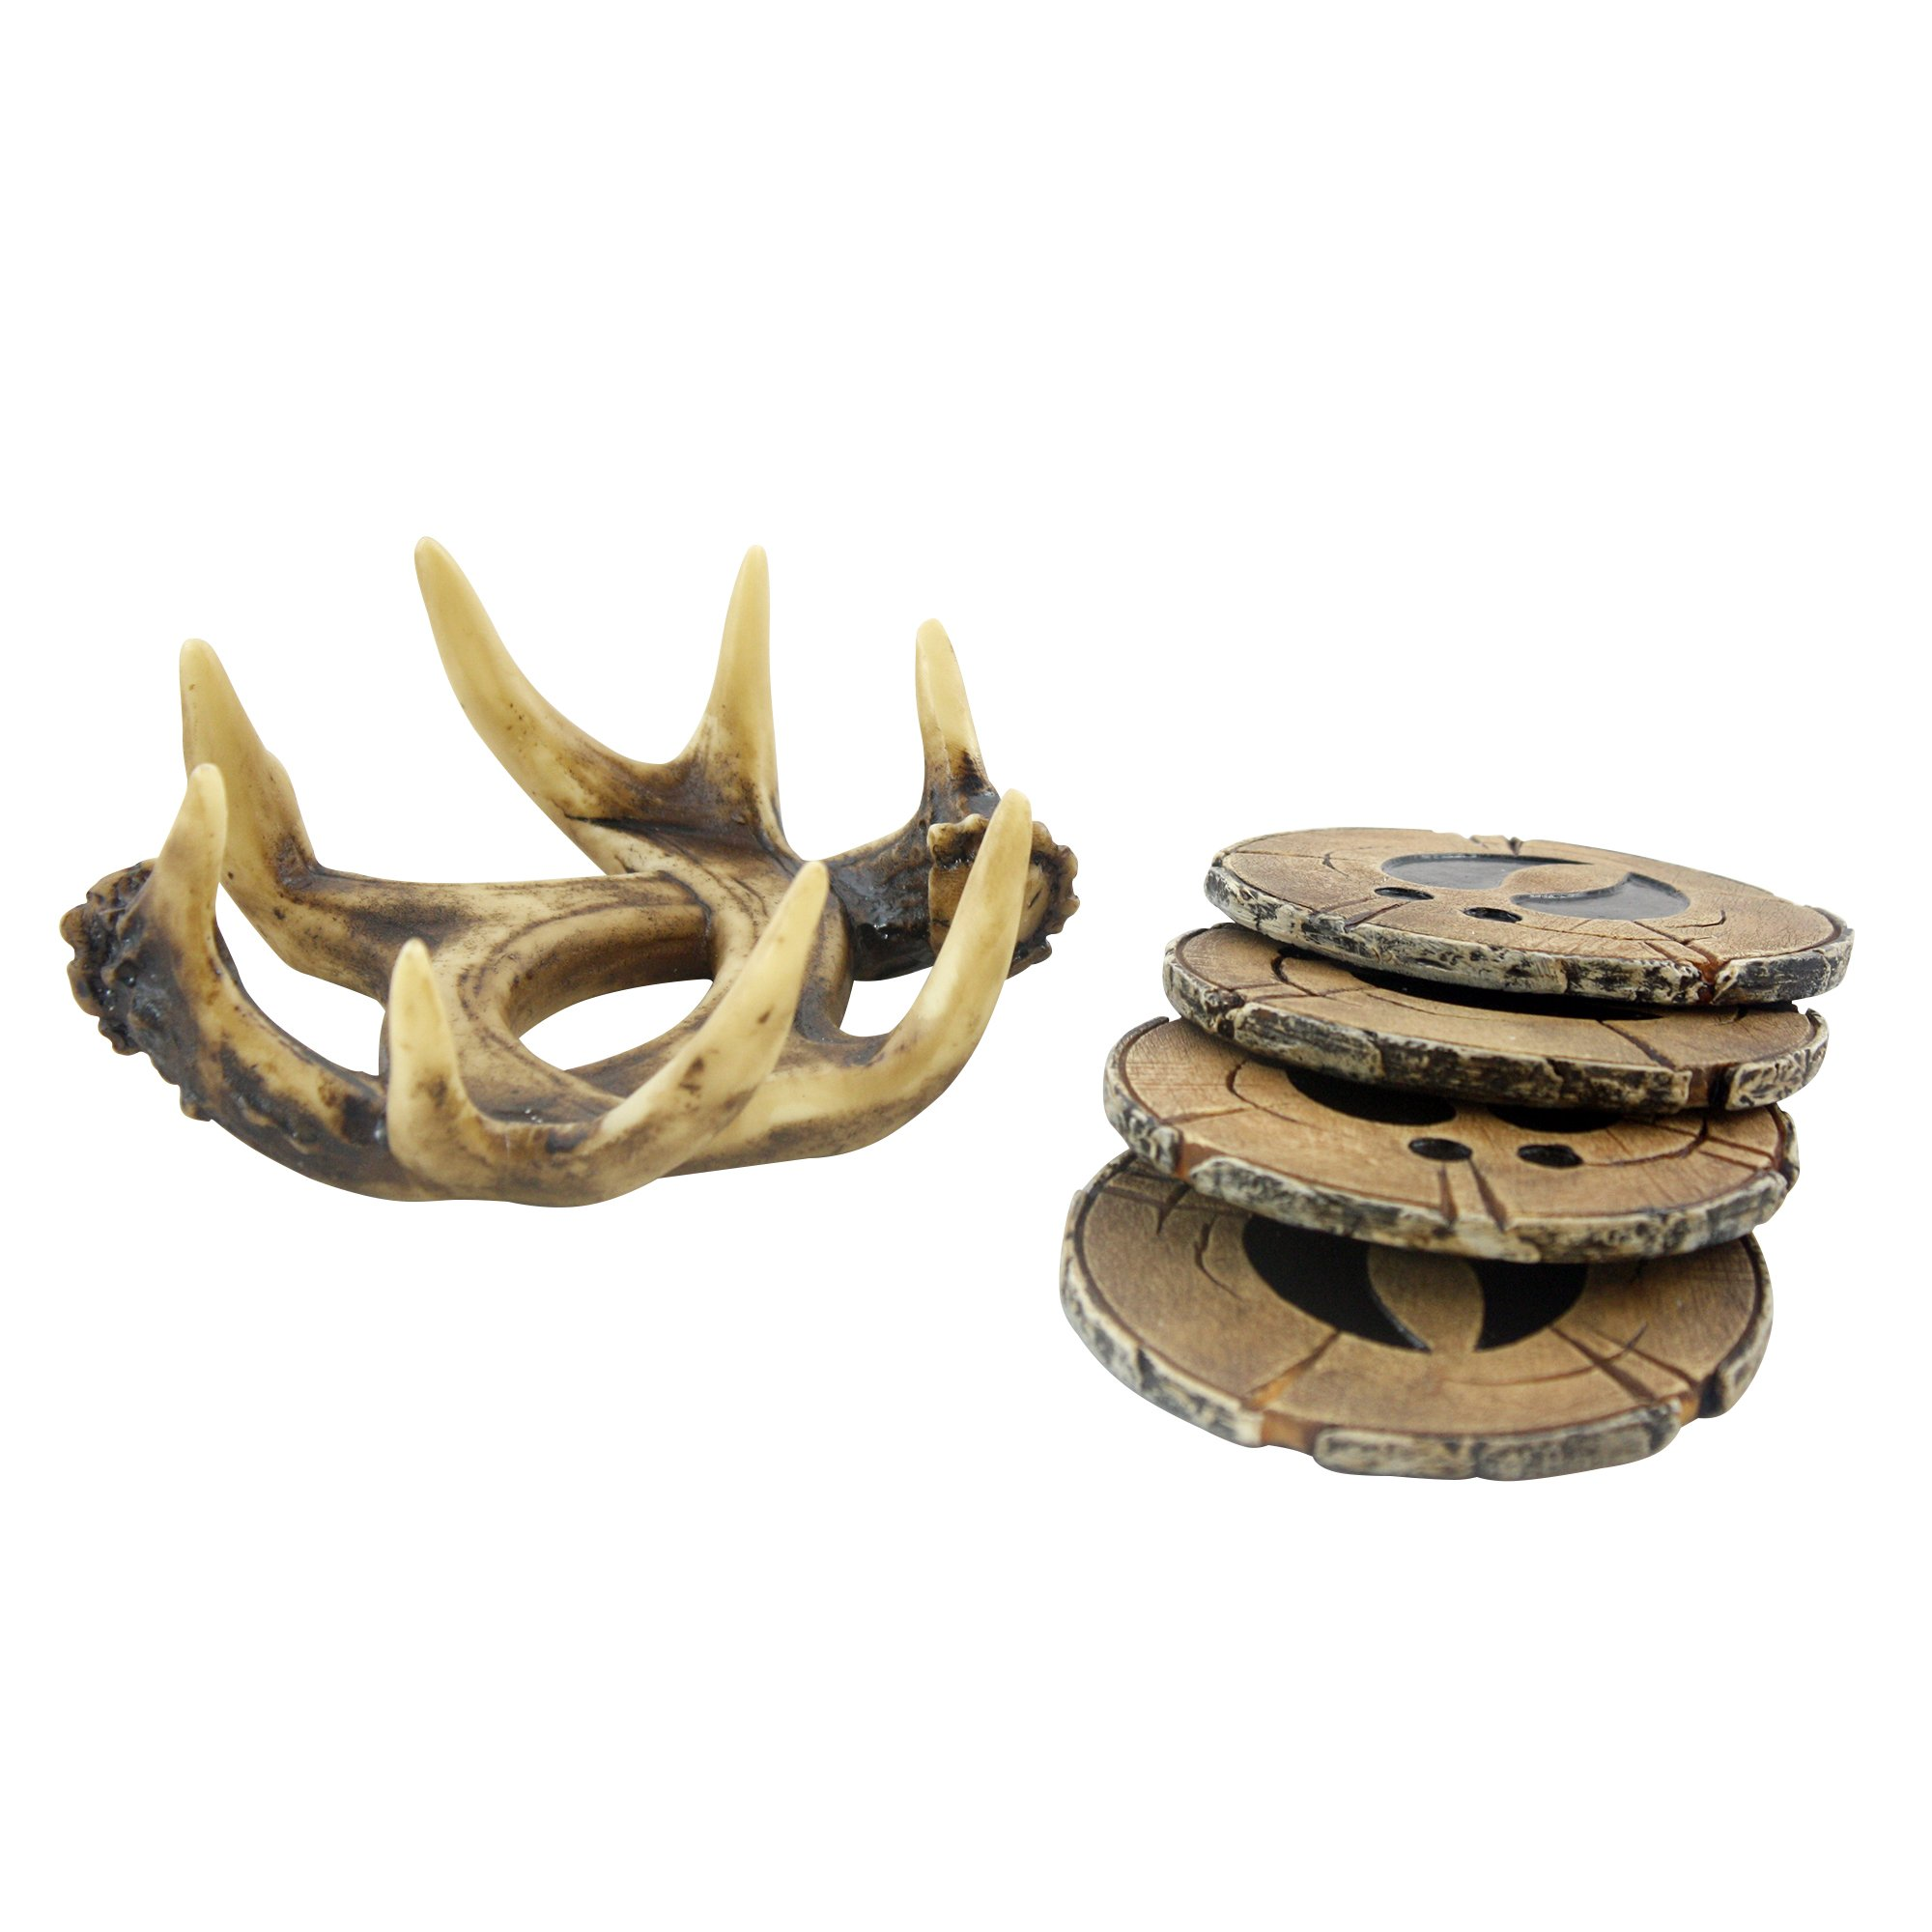 Pine Ridge Old West Deer Antler Drink Coasters Set Of 4 - Home Table Beverage Coaster With Holder - Drink Glass Holder With Outdoors Rustic Cabin Theme Decor by Pine Ridge (Image #3)